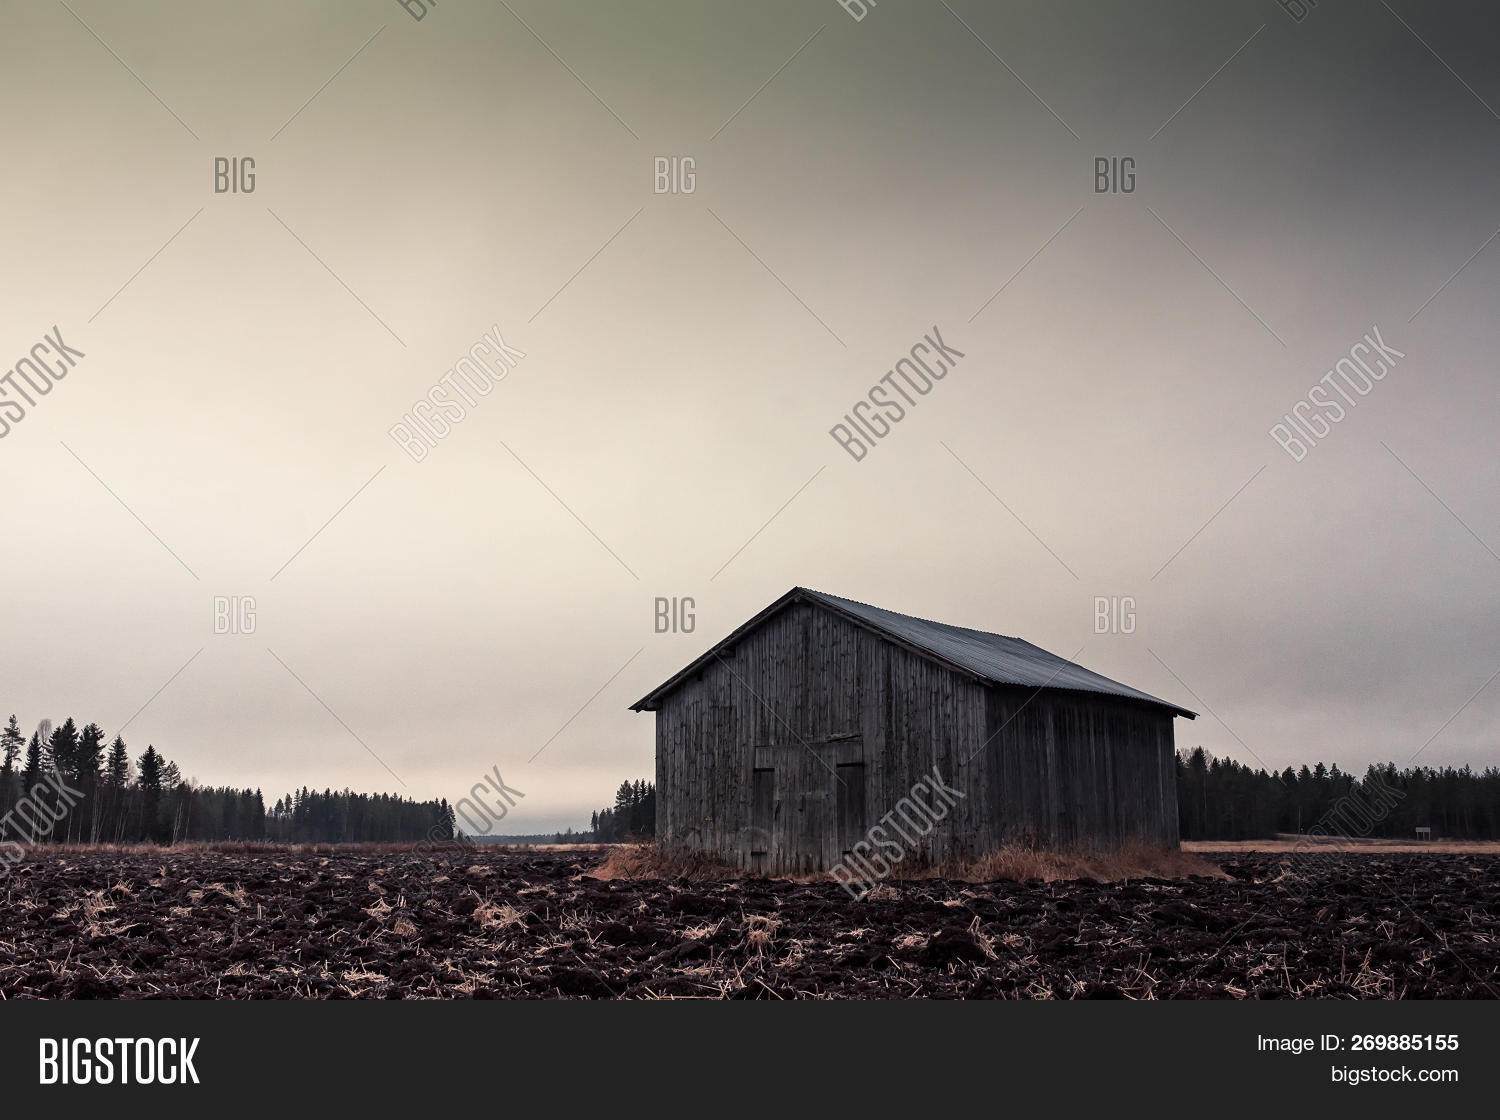 Small Barn House Image Photo Free Trial Bigstock